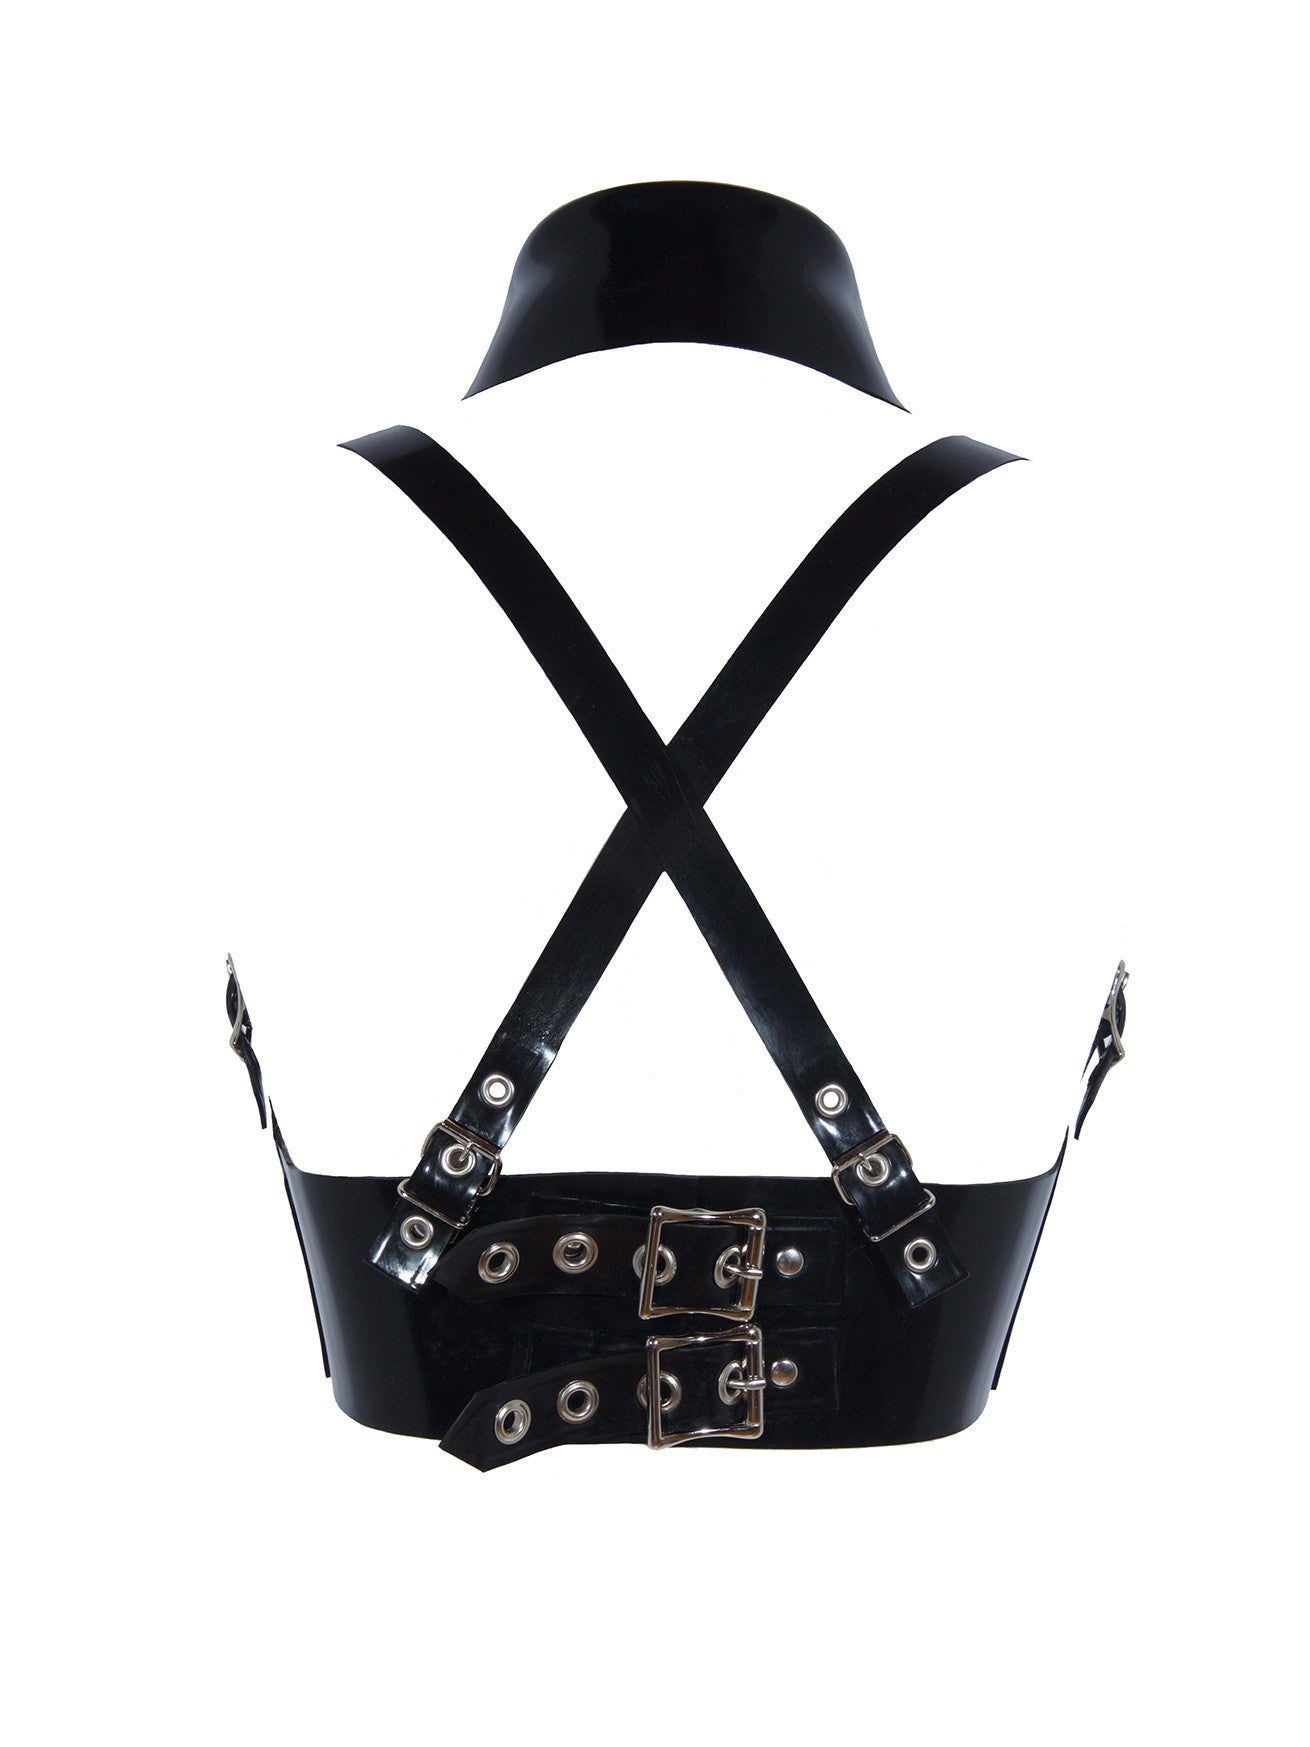 Siouxsie harness